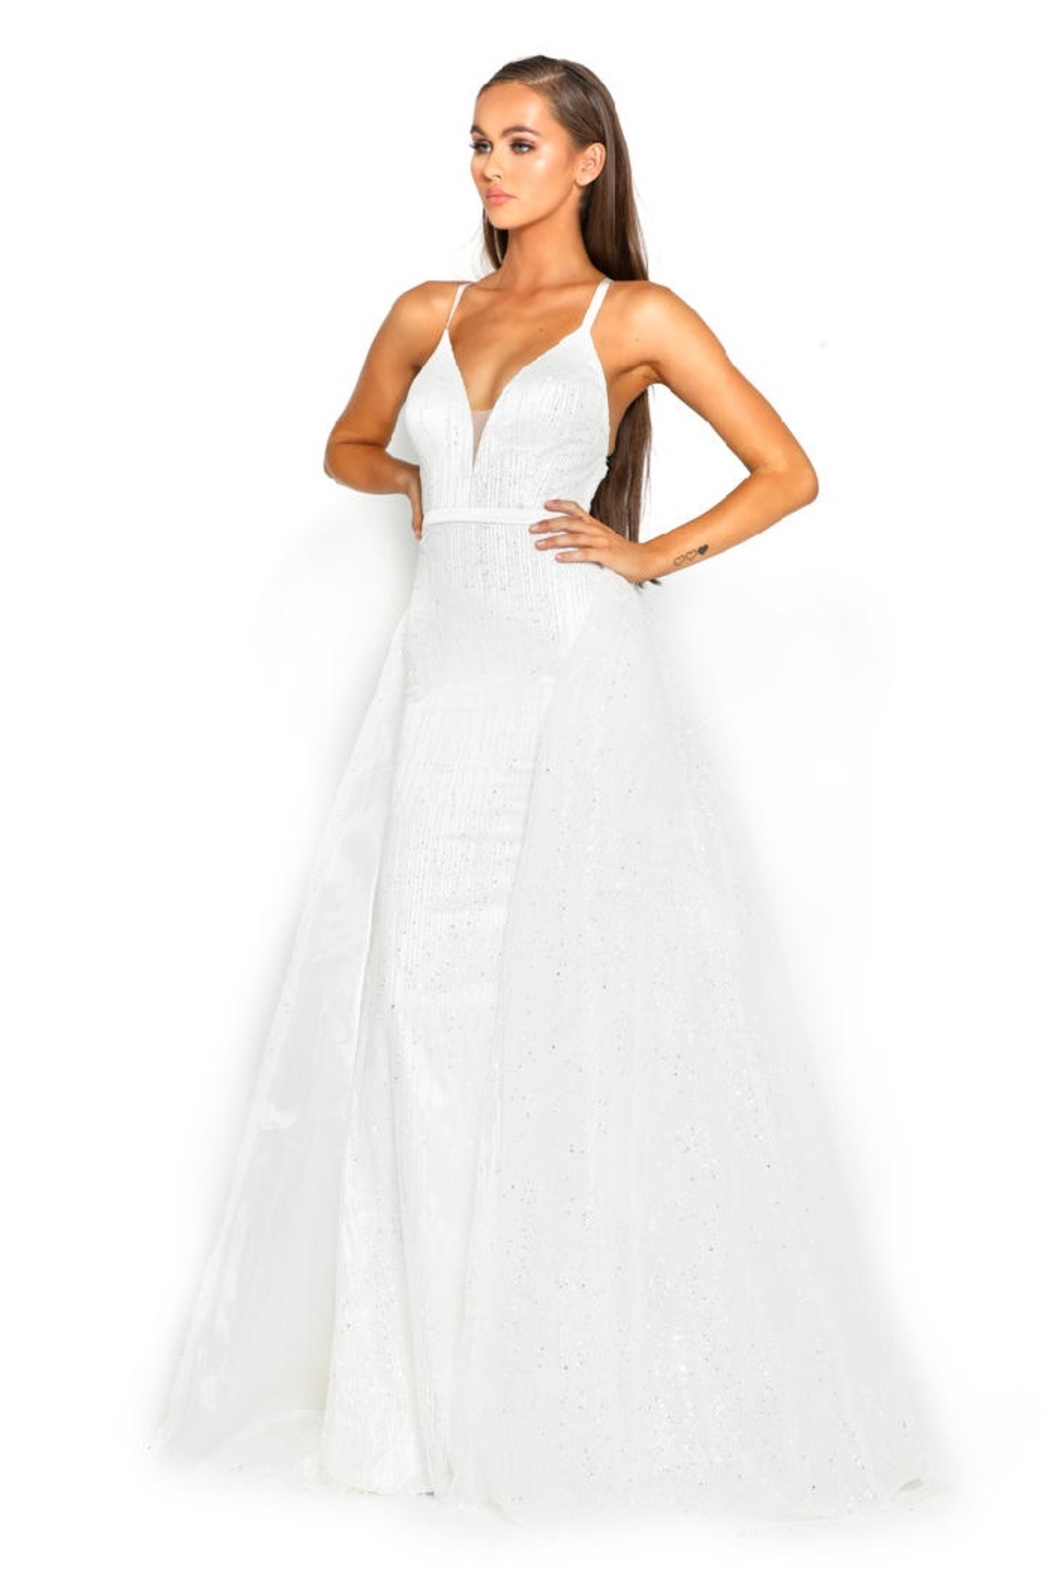 PORTIA AND SCARLETT White Glitter Fit & Flare Bridal Gown With Detachable Train - Front Full Image